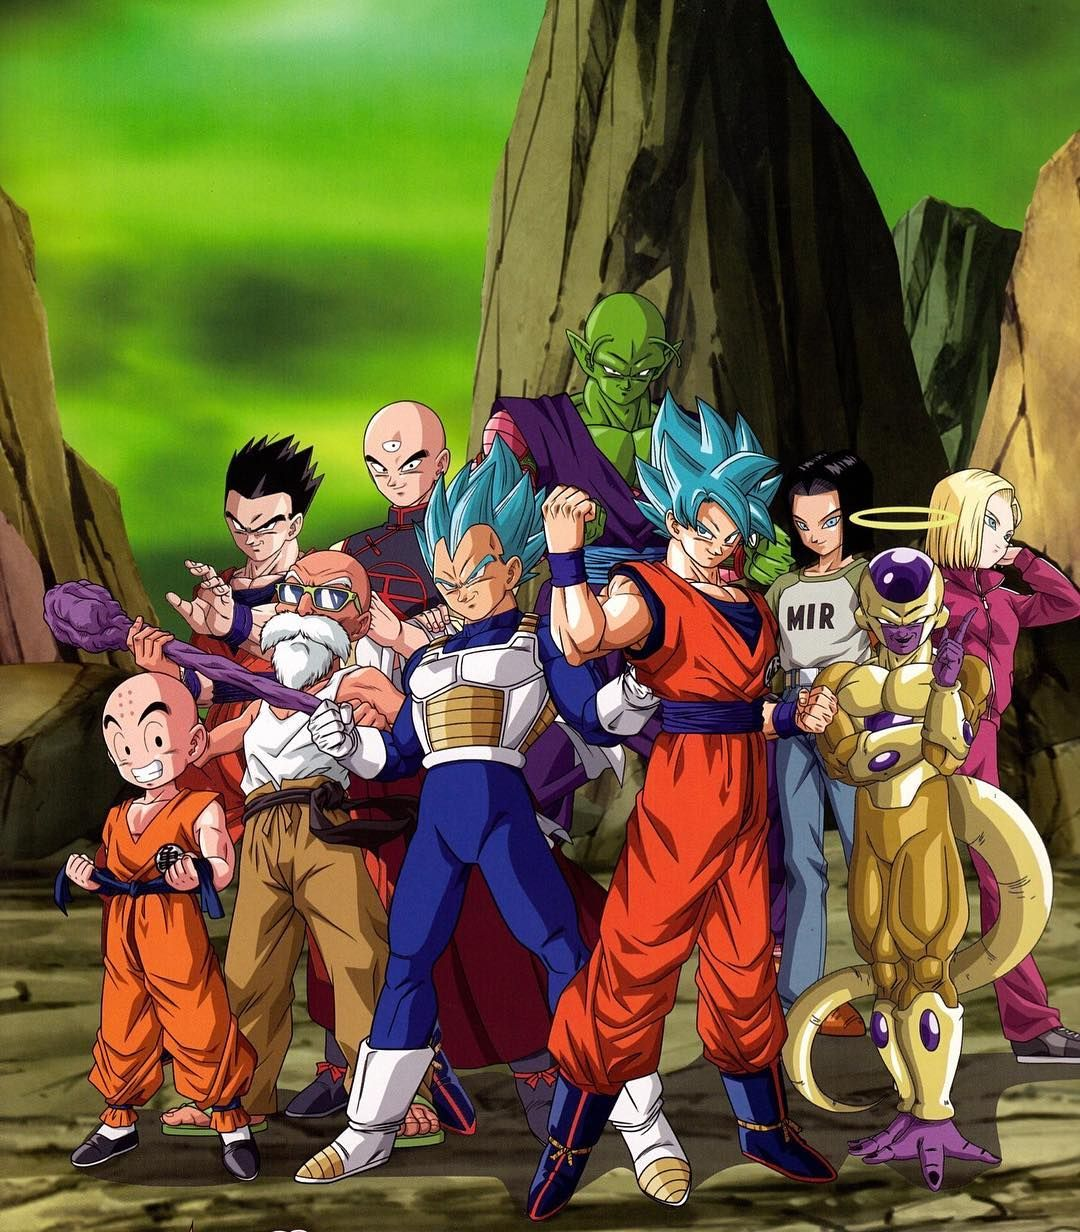 Team Universe 7 Dbz Dbzkai Dbs Dbgt Dragonball Dragonballs Dragonballz Dragonballzkai Dra Dragon Ball Super Goku Dragon Ball Super Dragon Ball